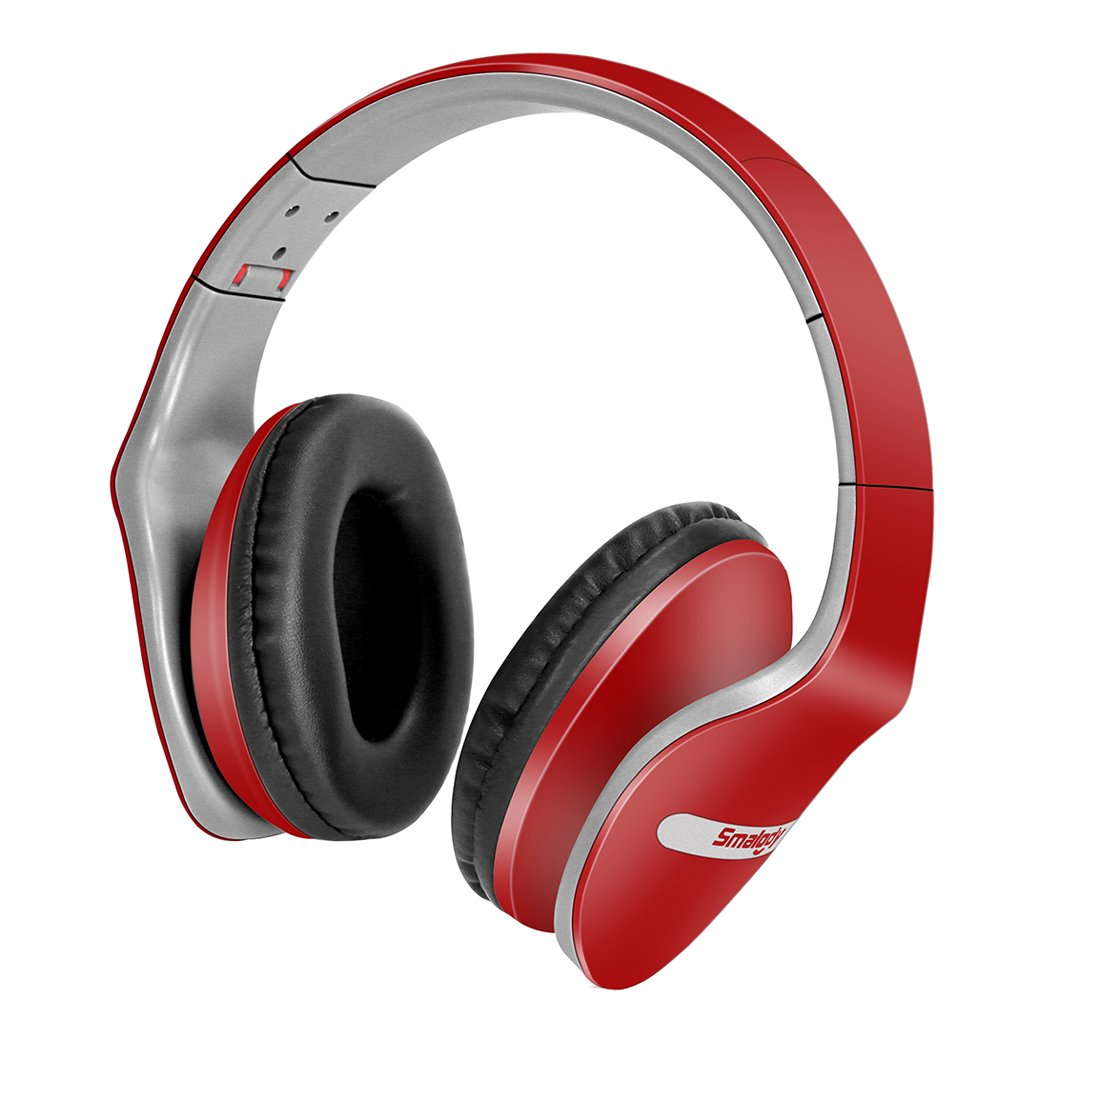 Smalody Gaming Headset Deep Bass Computer Game Headphones Noise Cancelling with Microphone Cool Design for computer PC Gamer (Red)